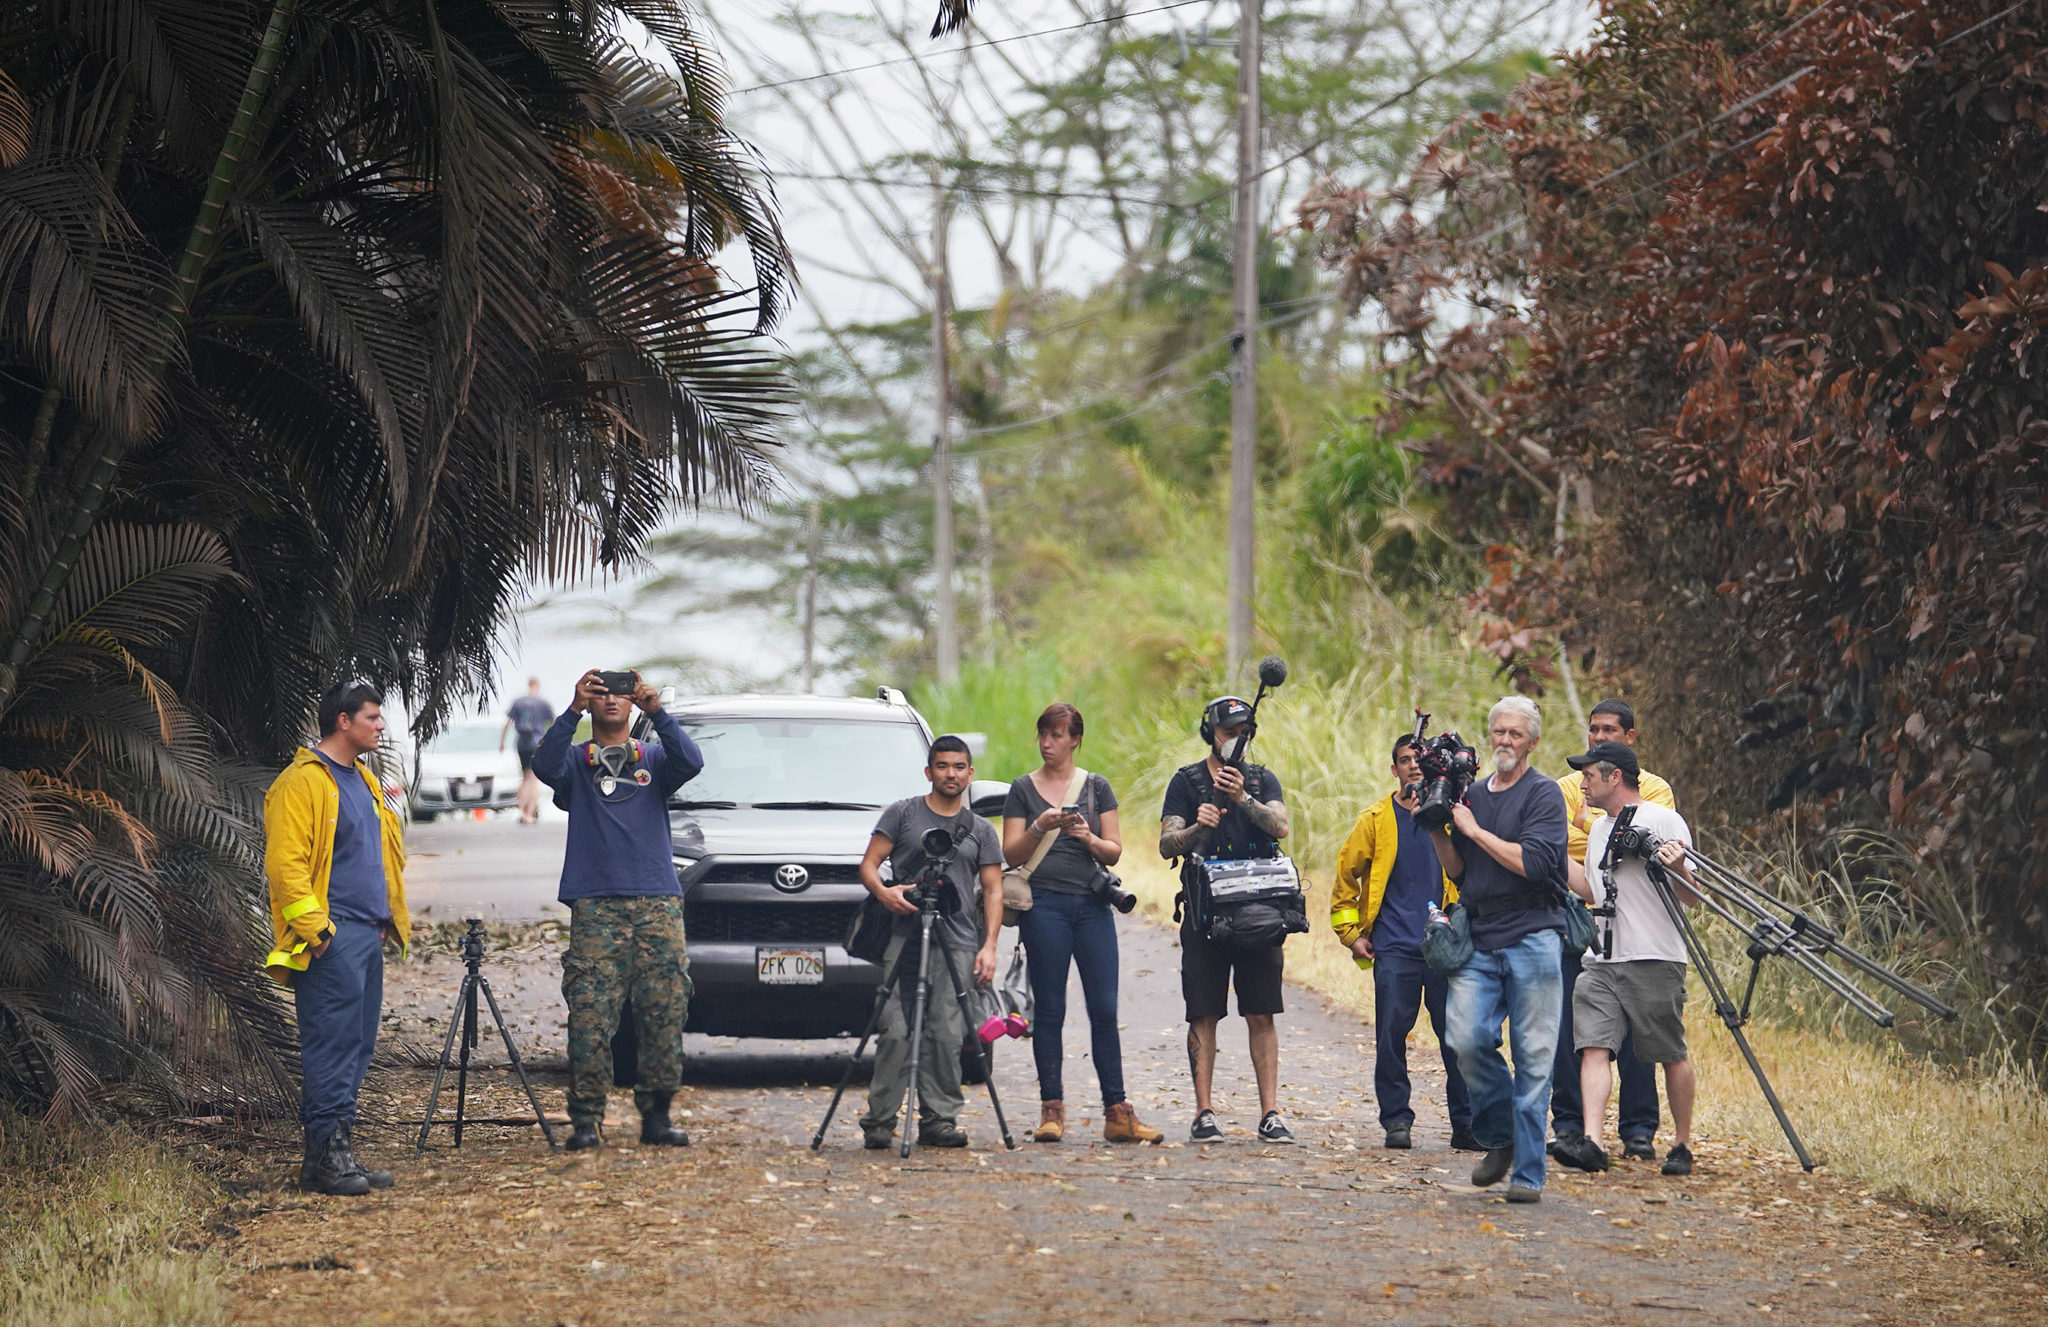 <p>Leilani Gardens resident Mick Kalber, a professional photographer and filmmaker, checks out a new outbreak along Kahukai Street along with members of the media.</p>